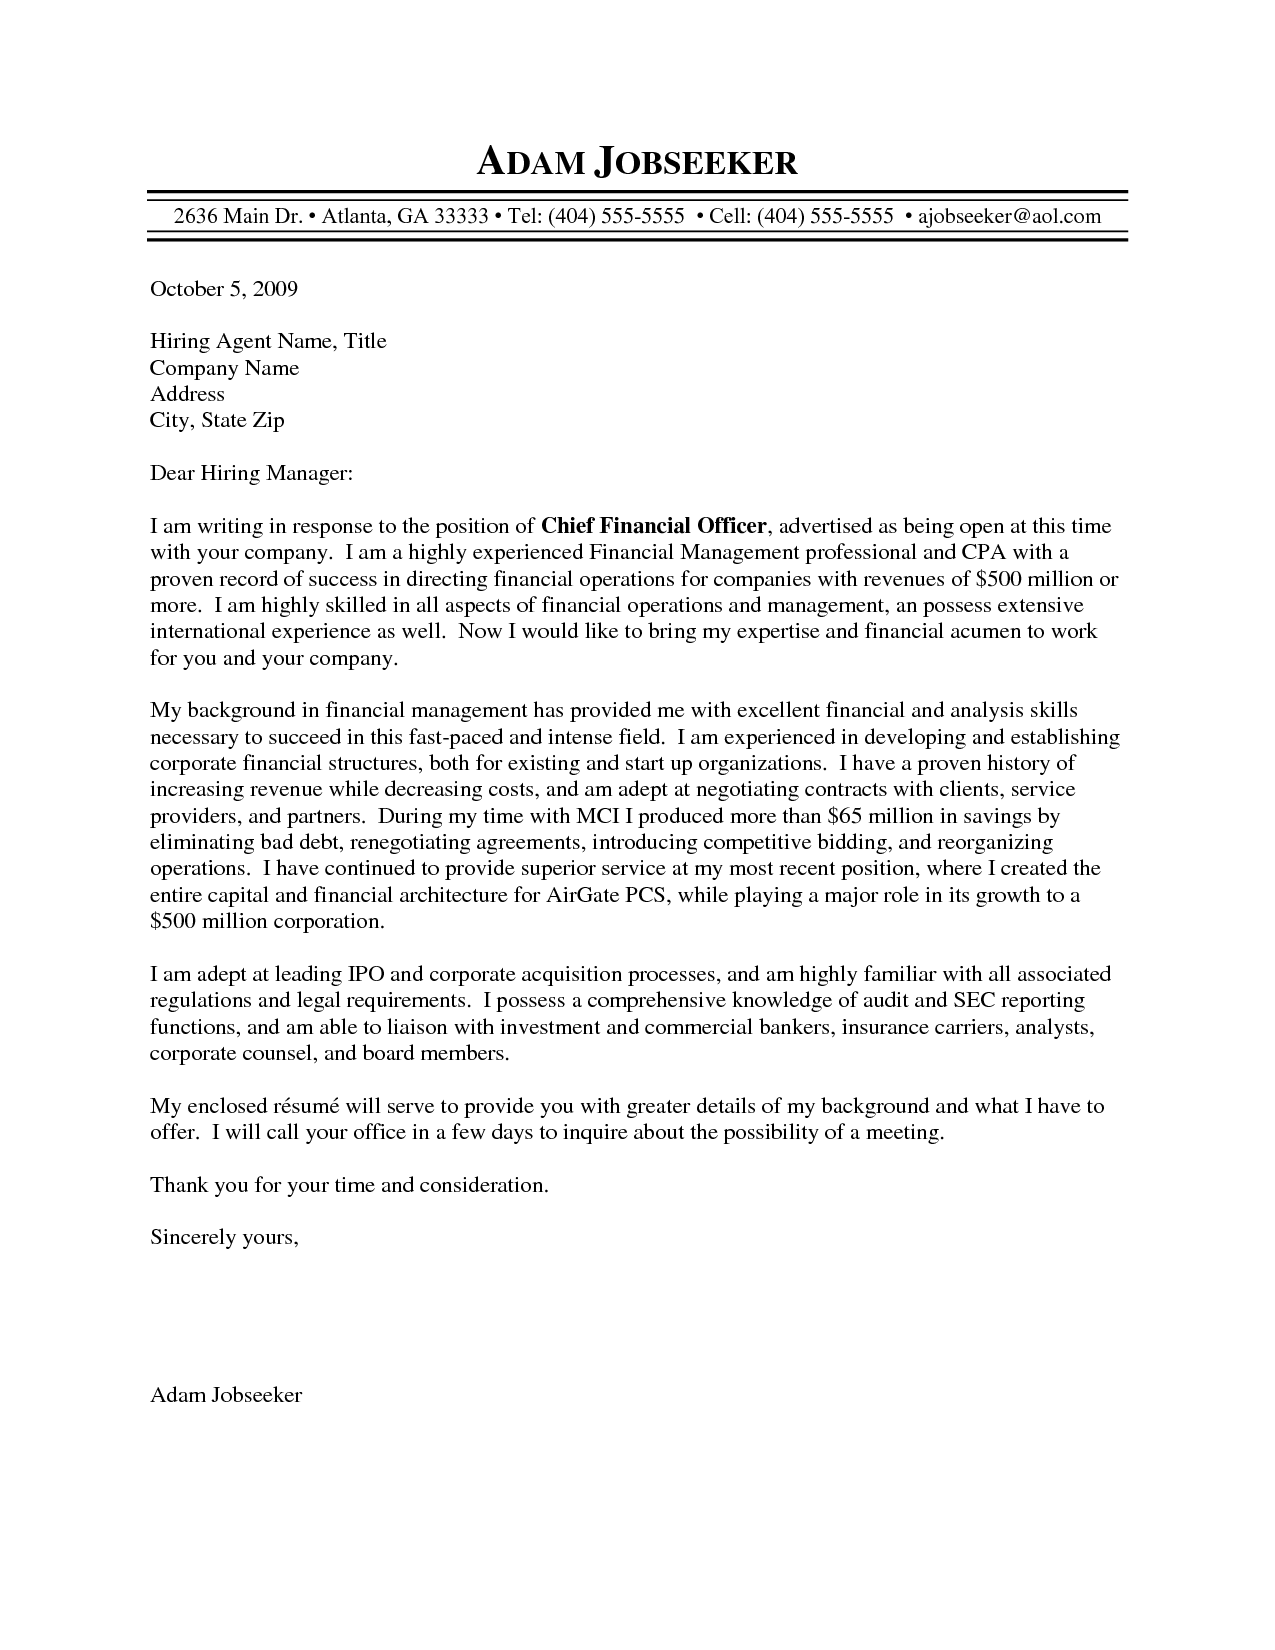 Cfo Cover Letter Sample  scrumps